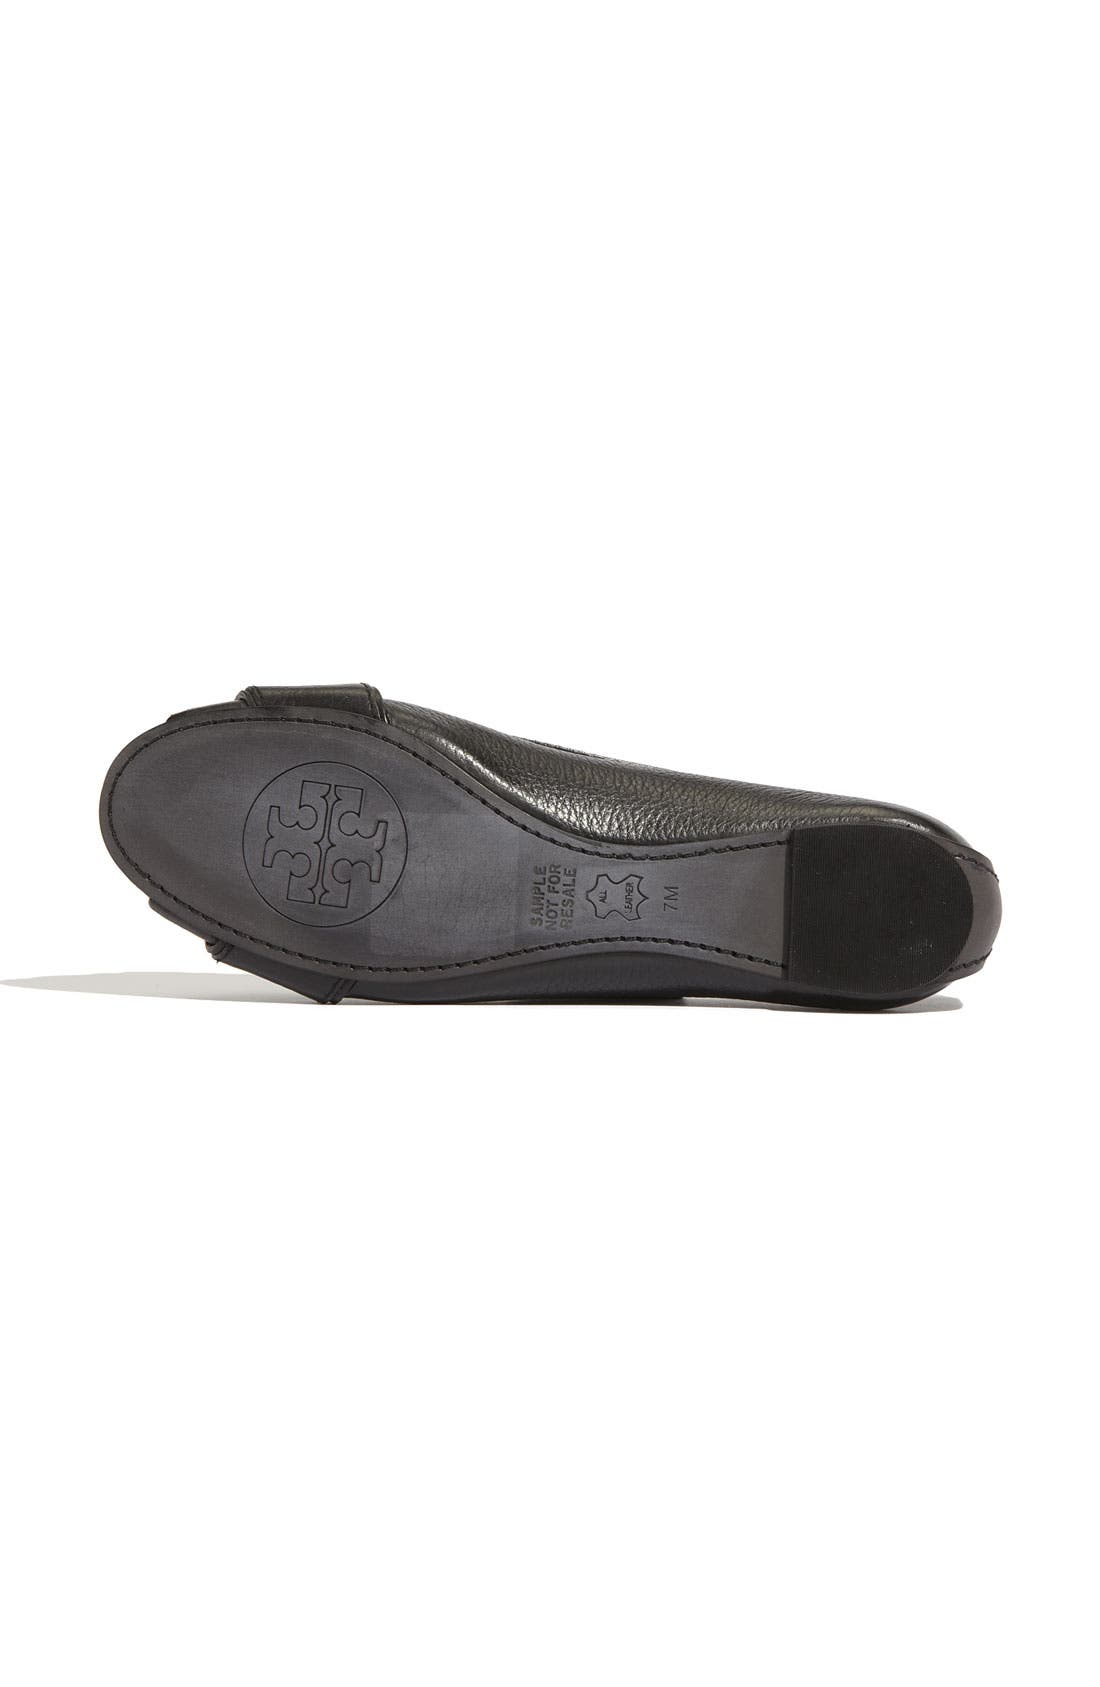 Alternate Image 4  - Tory Burch 'Clines' Ballet Flat